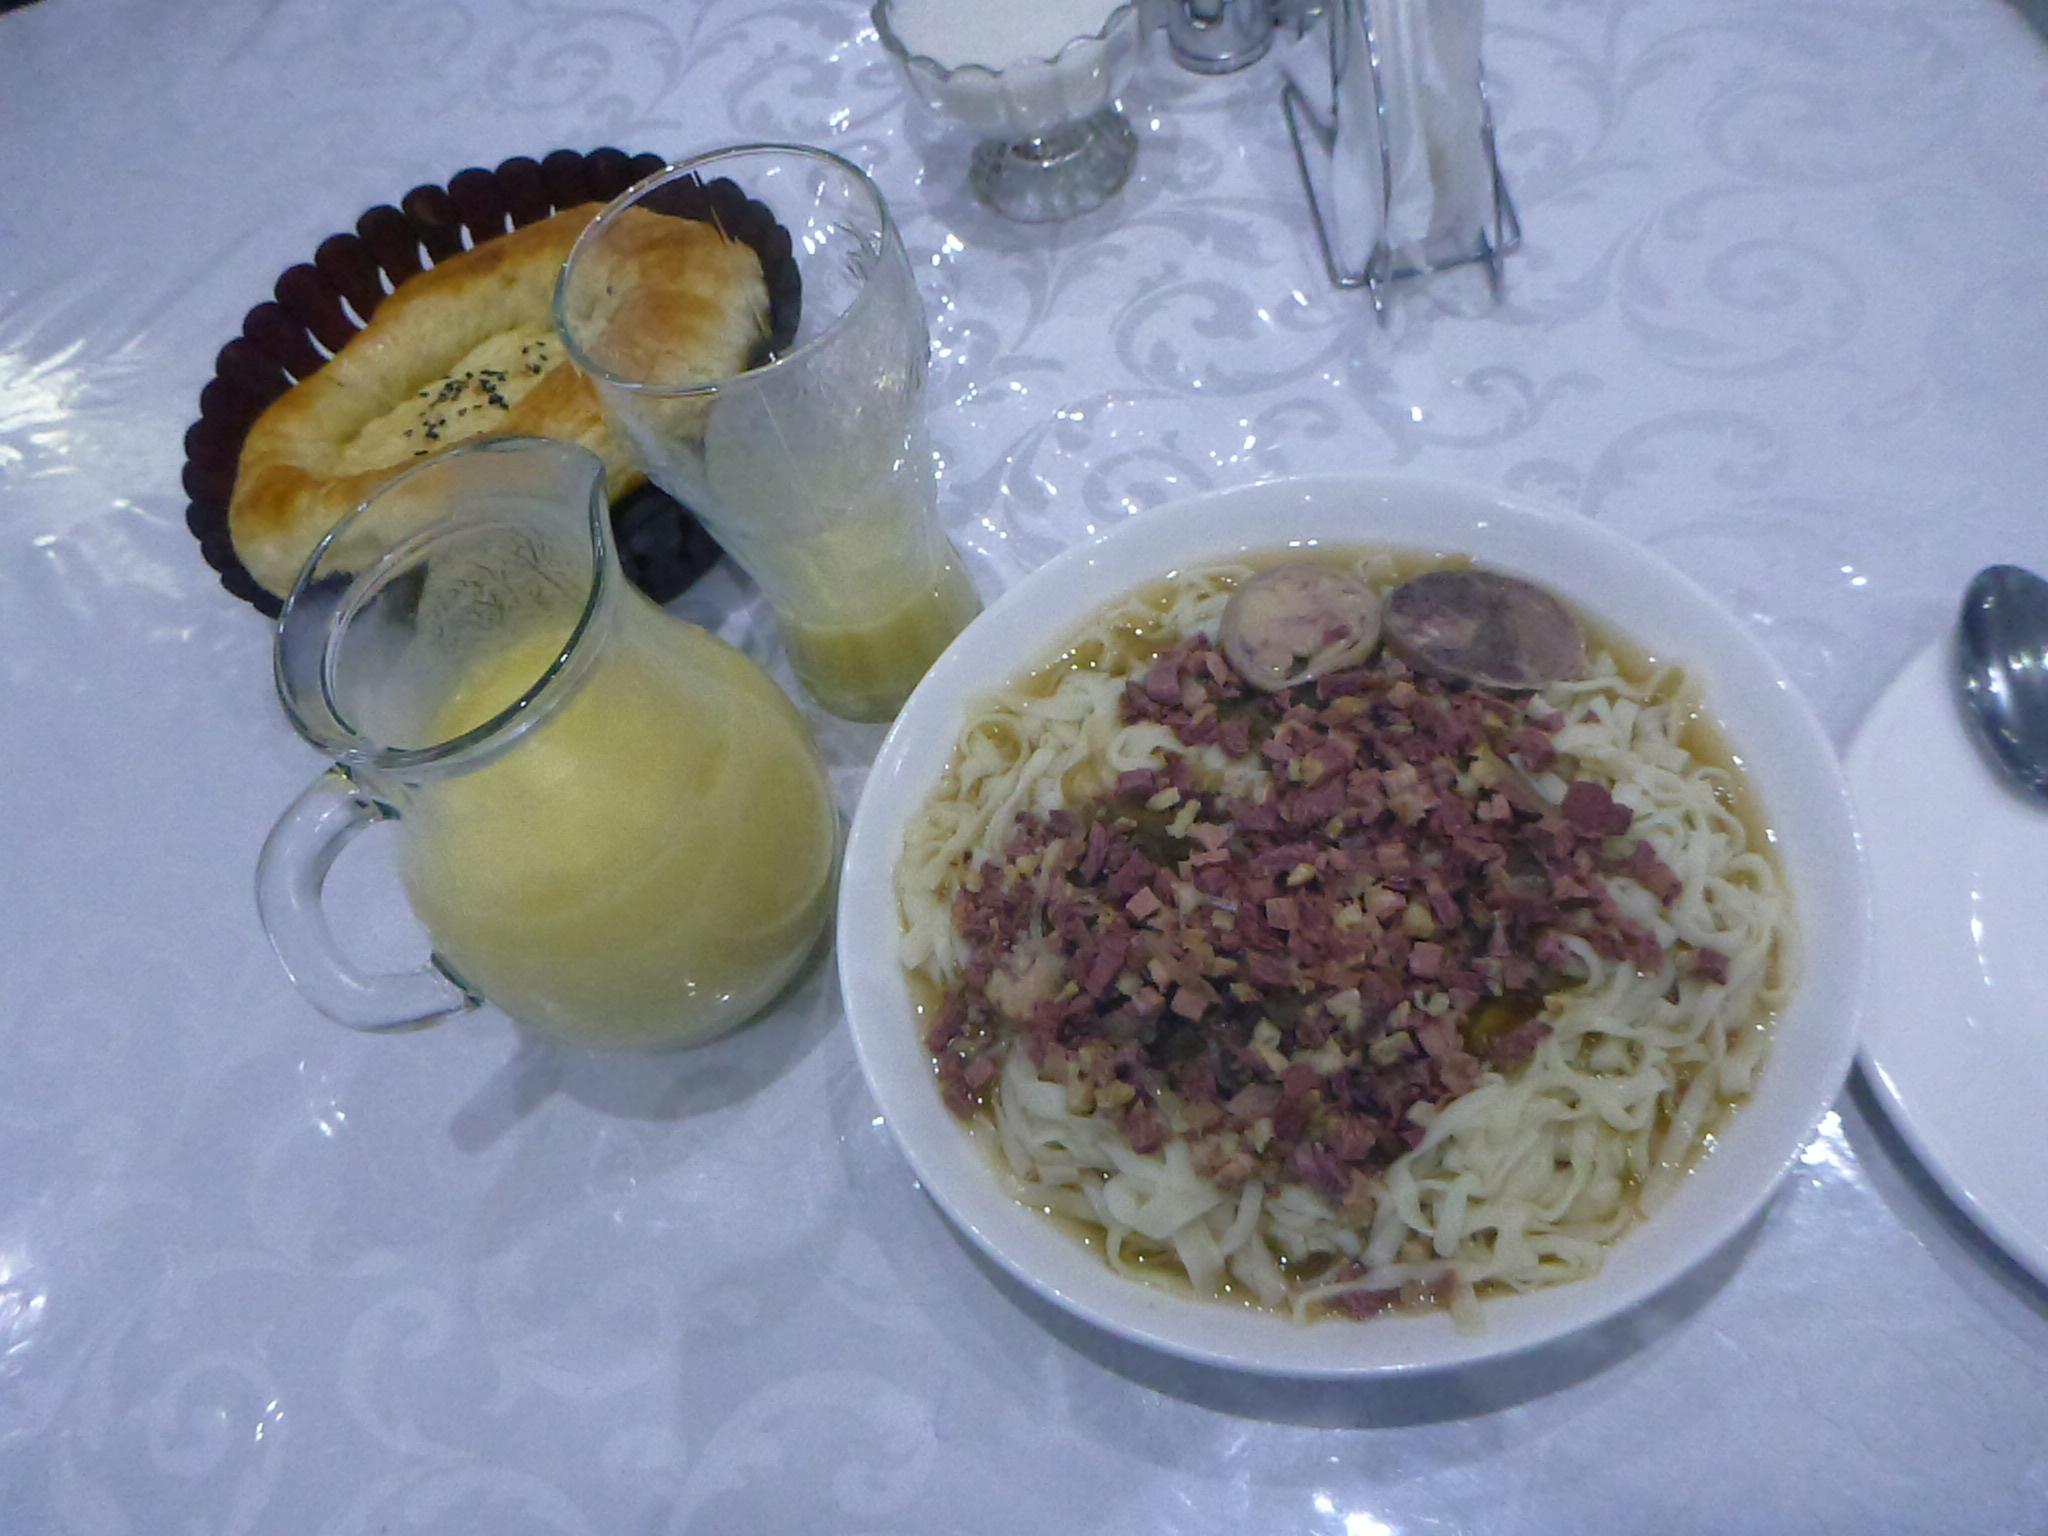 Friday's Featured Food: Beshbarmak (Horse Meat Noodles) and Bozo in Jalalabad Restaurant, Bishkek, Kyrgyzstan